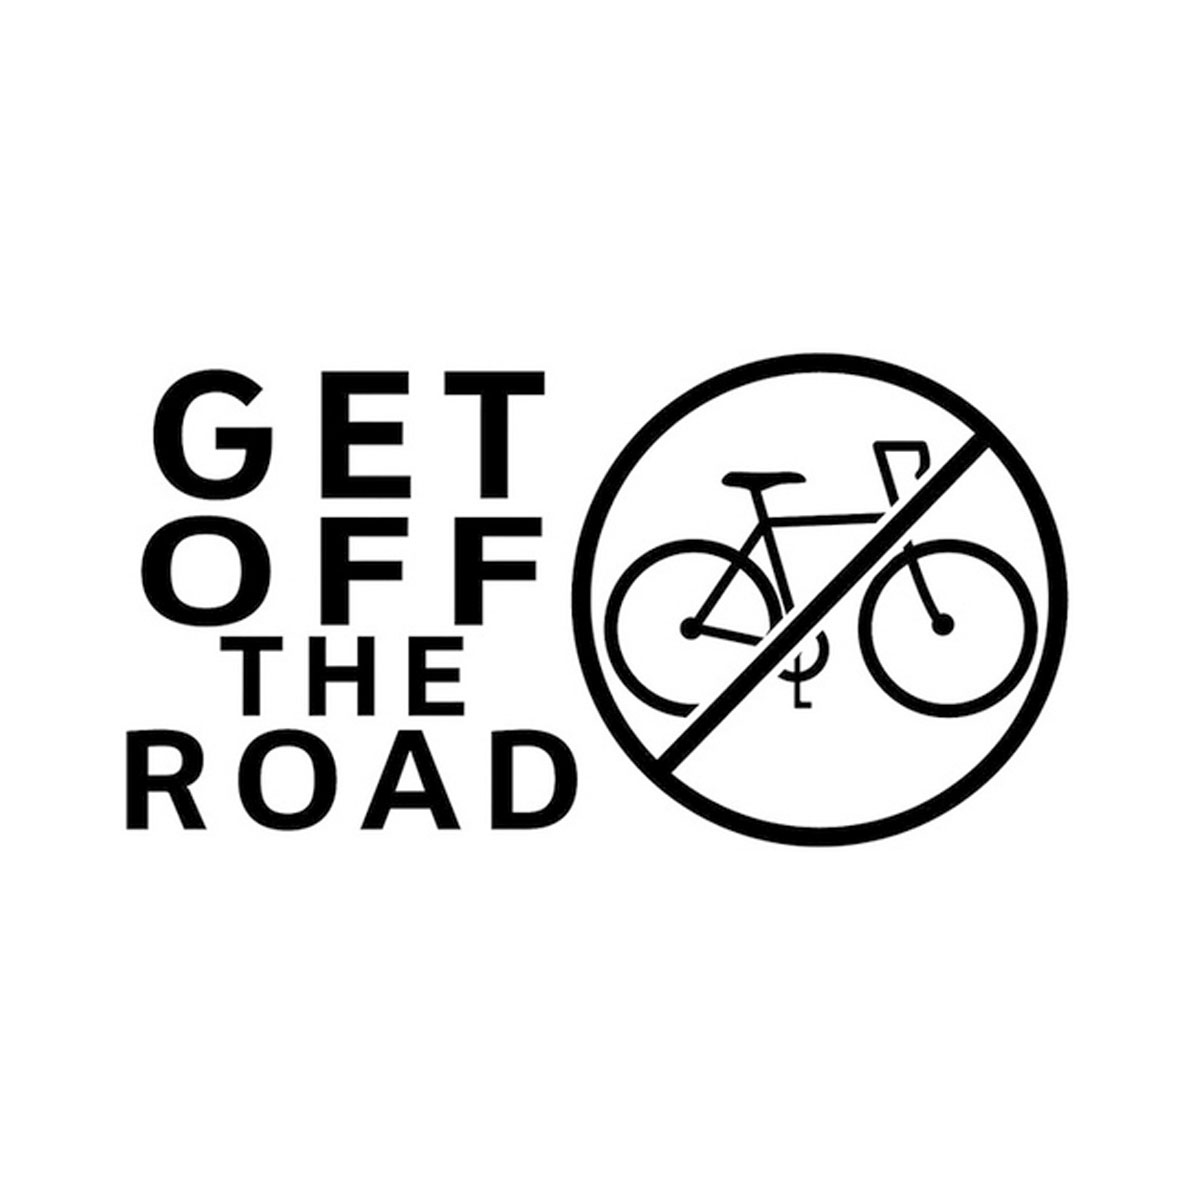 get off the road anti bike home glass window glass wall